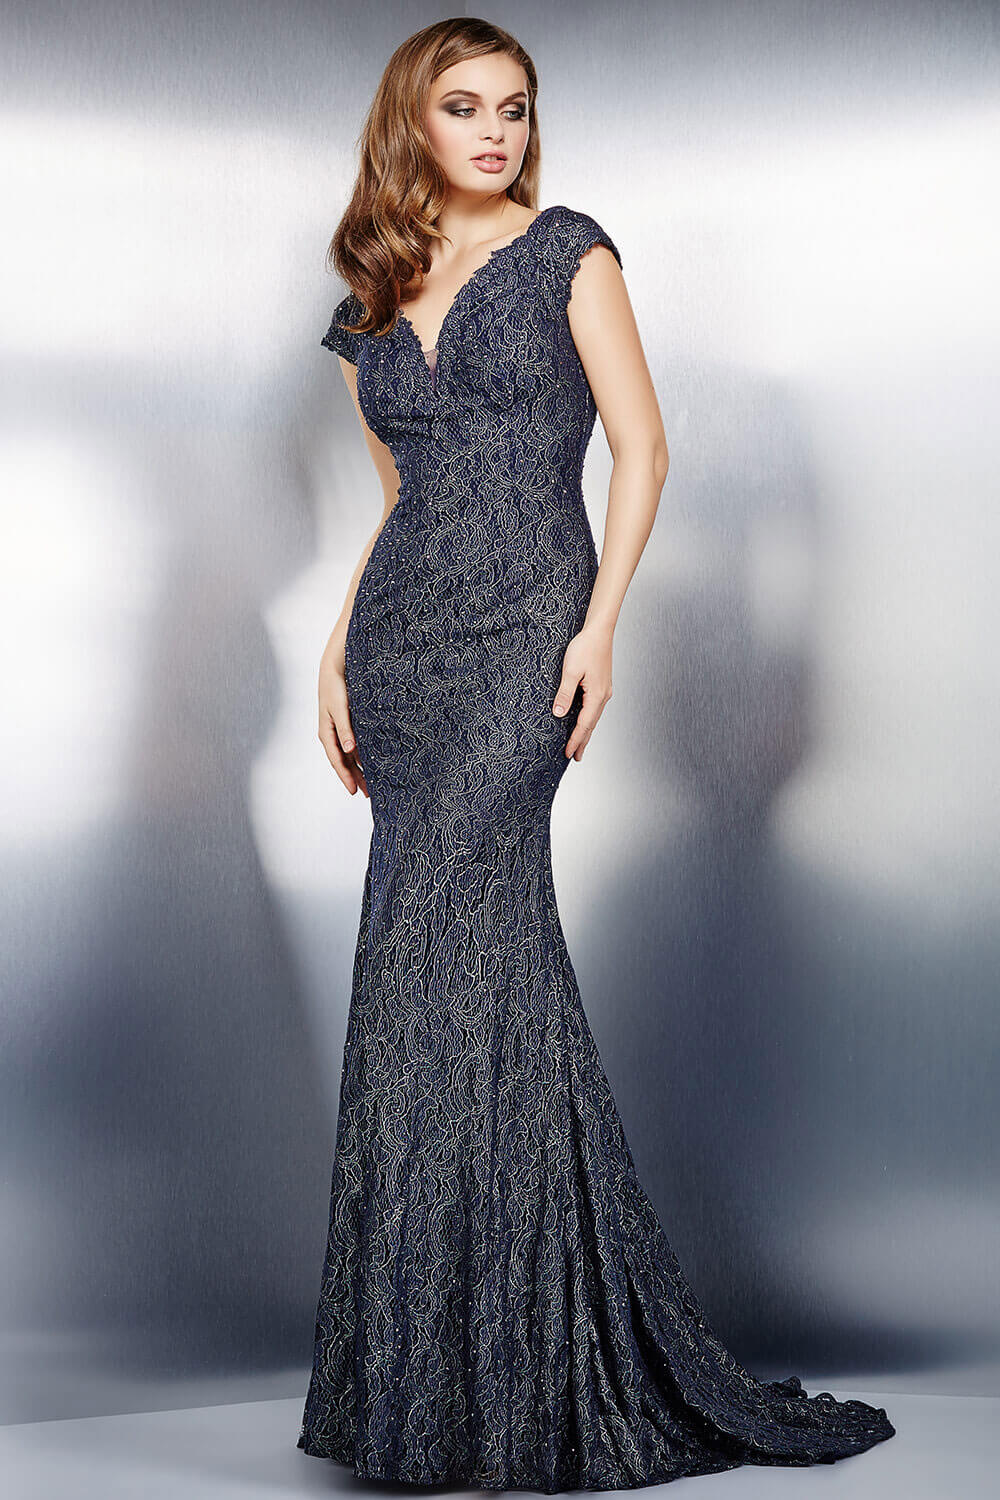 jovani Jovani 26846 Grey Lace Mother of the Bride Dress